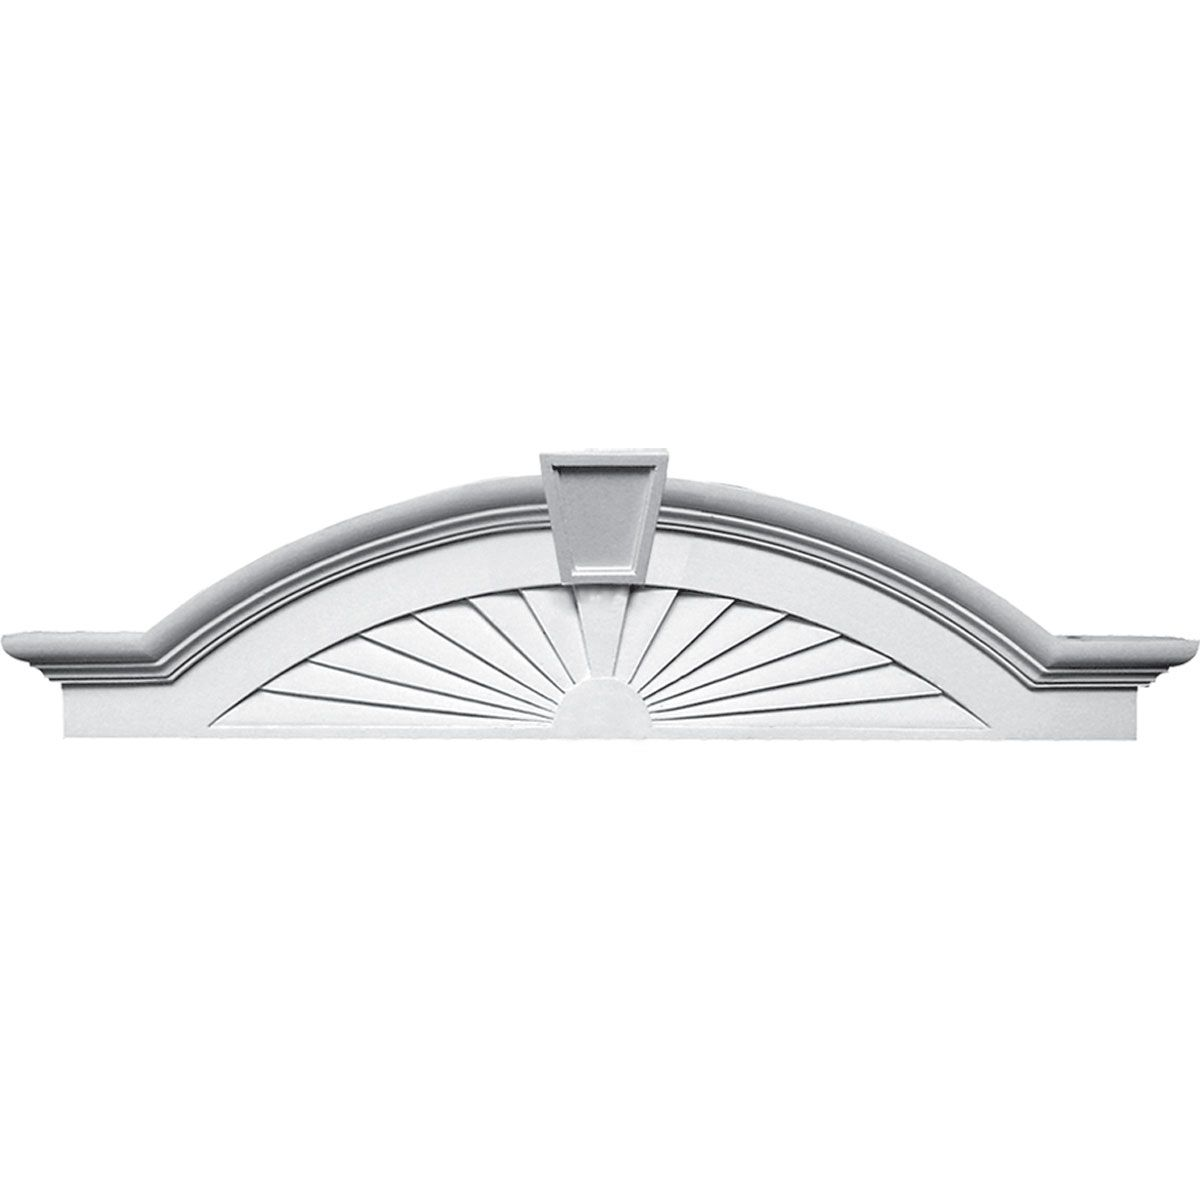 Pd 270375 elliptical sunburst with trim pediment - Decorative exterior door pediments ...